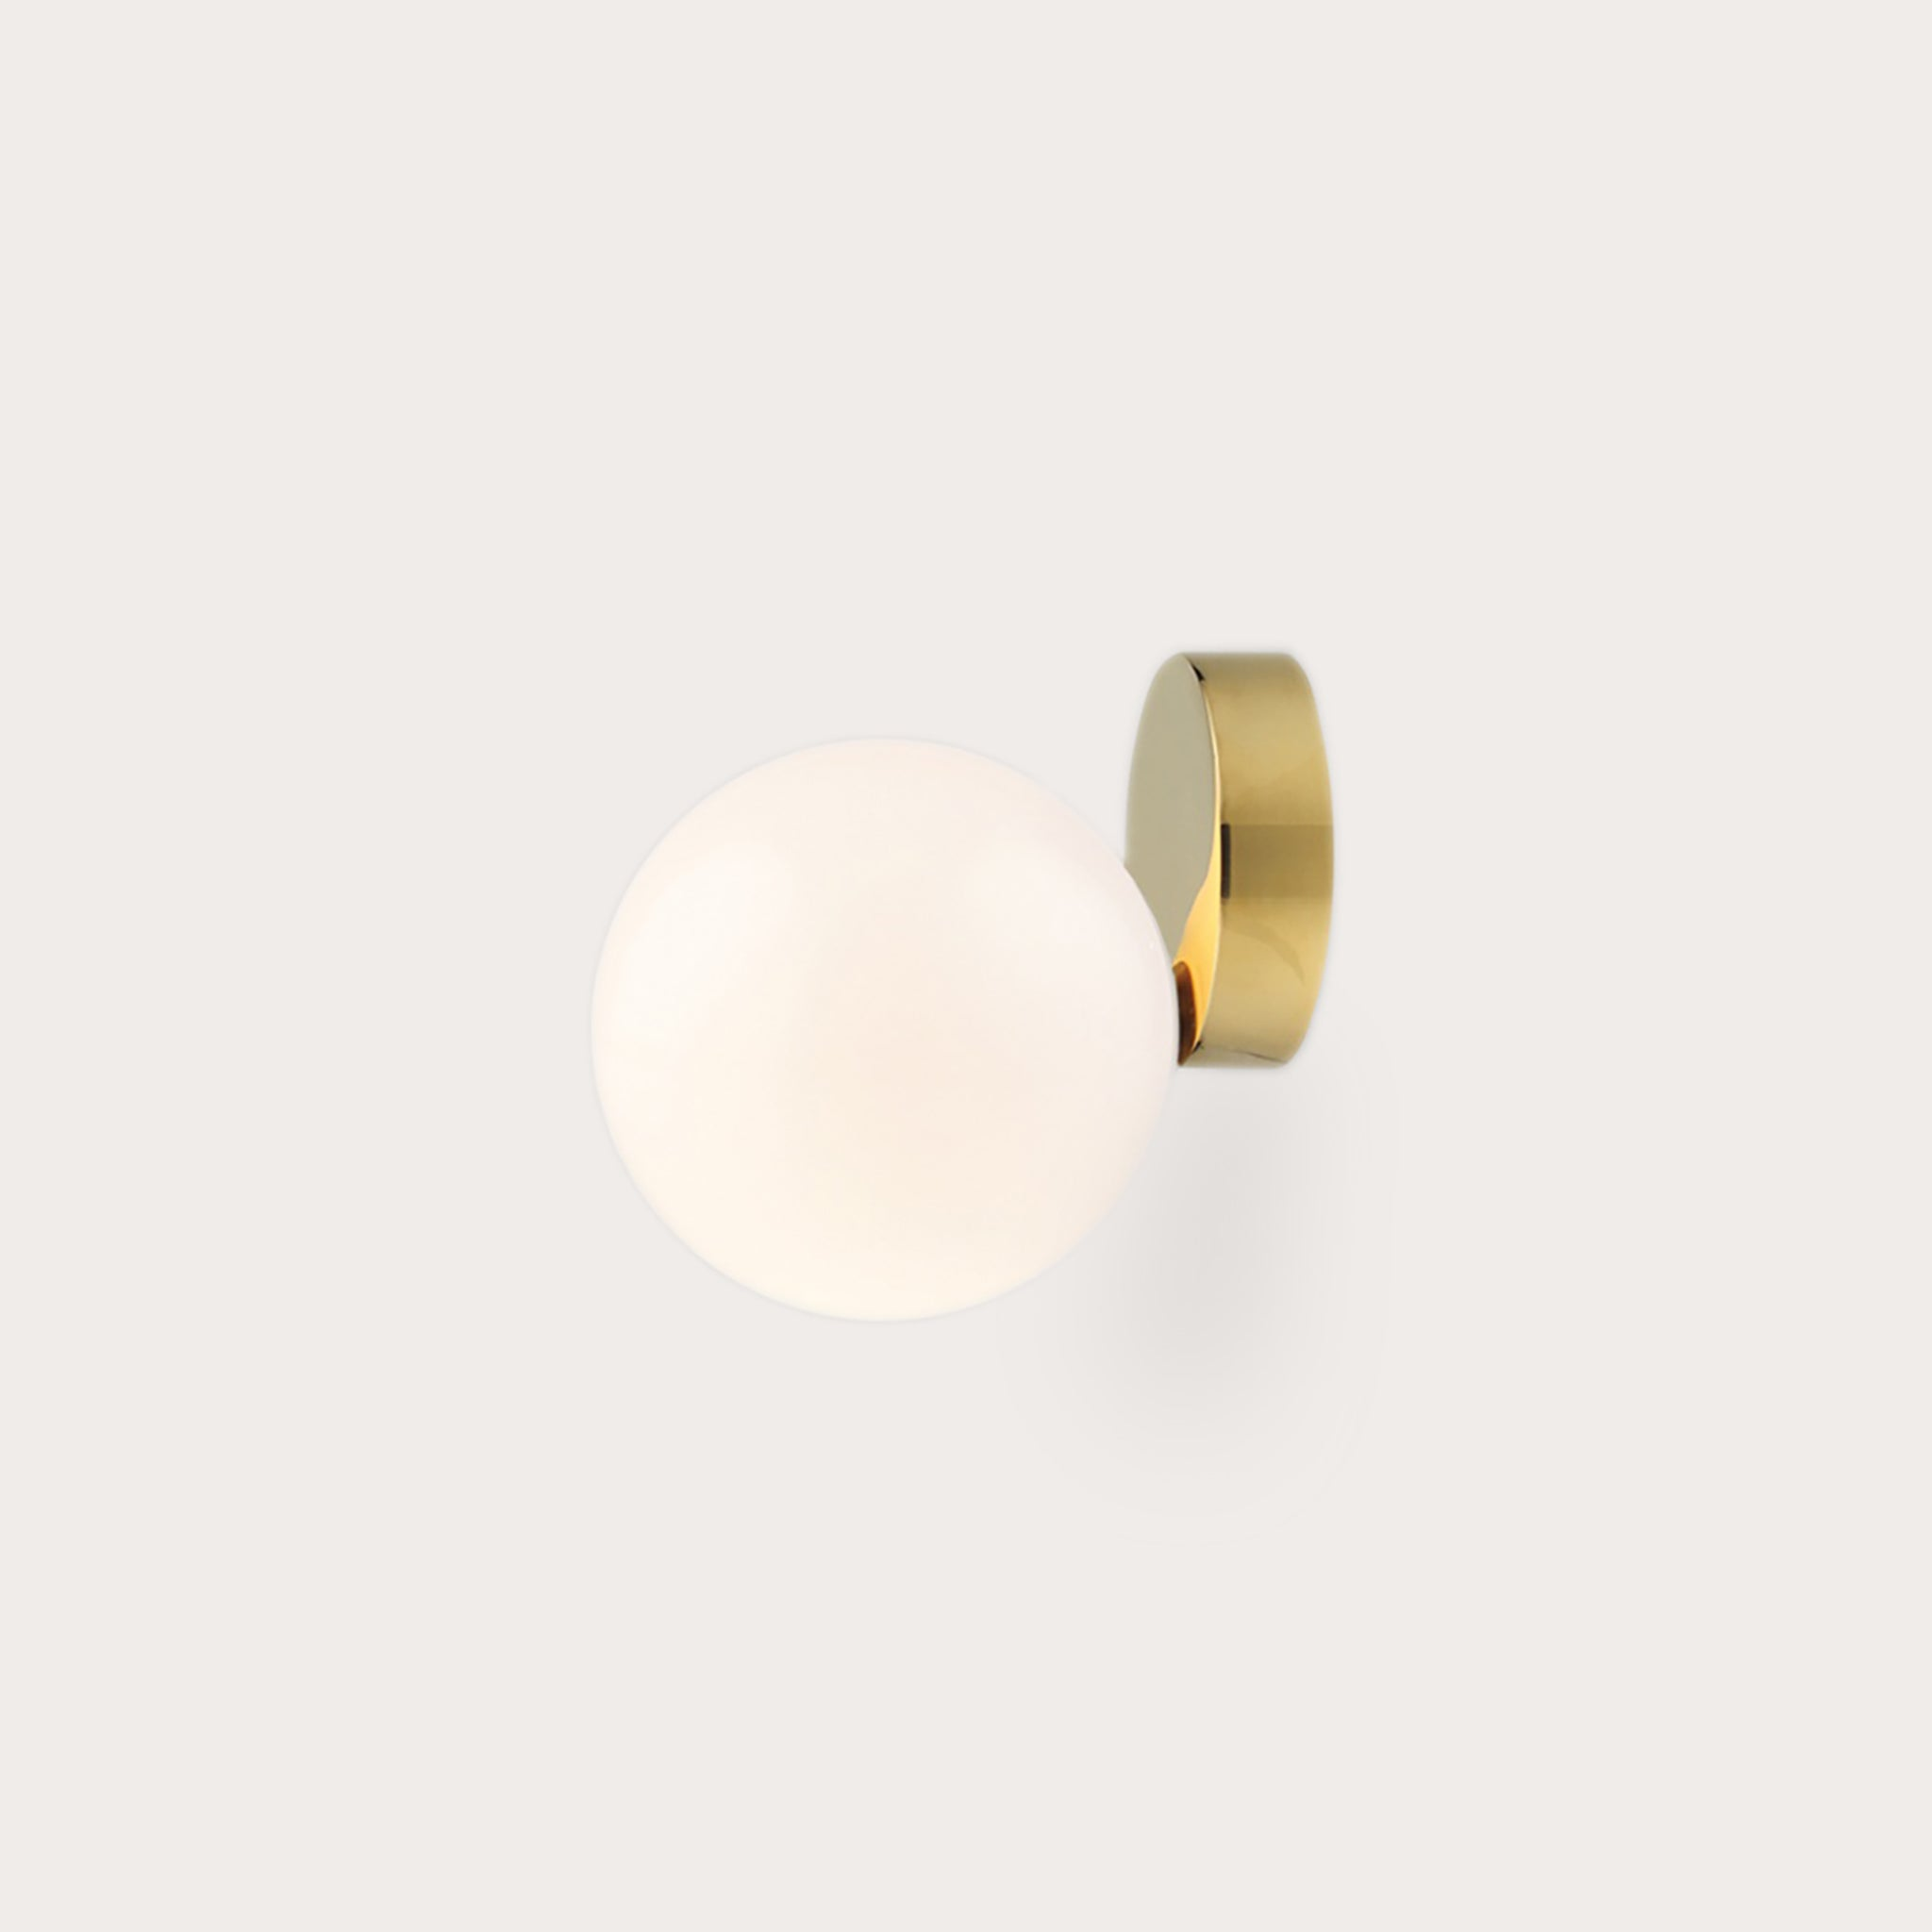 Tip of the Tongue Wall/Ceiling Mounted Lighting Michael Anastassiades Designer Furniture Sku: 717-100-10061